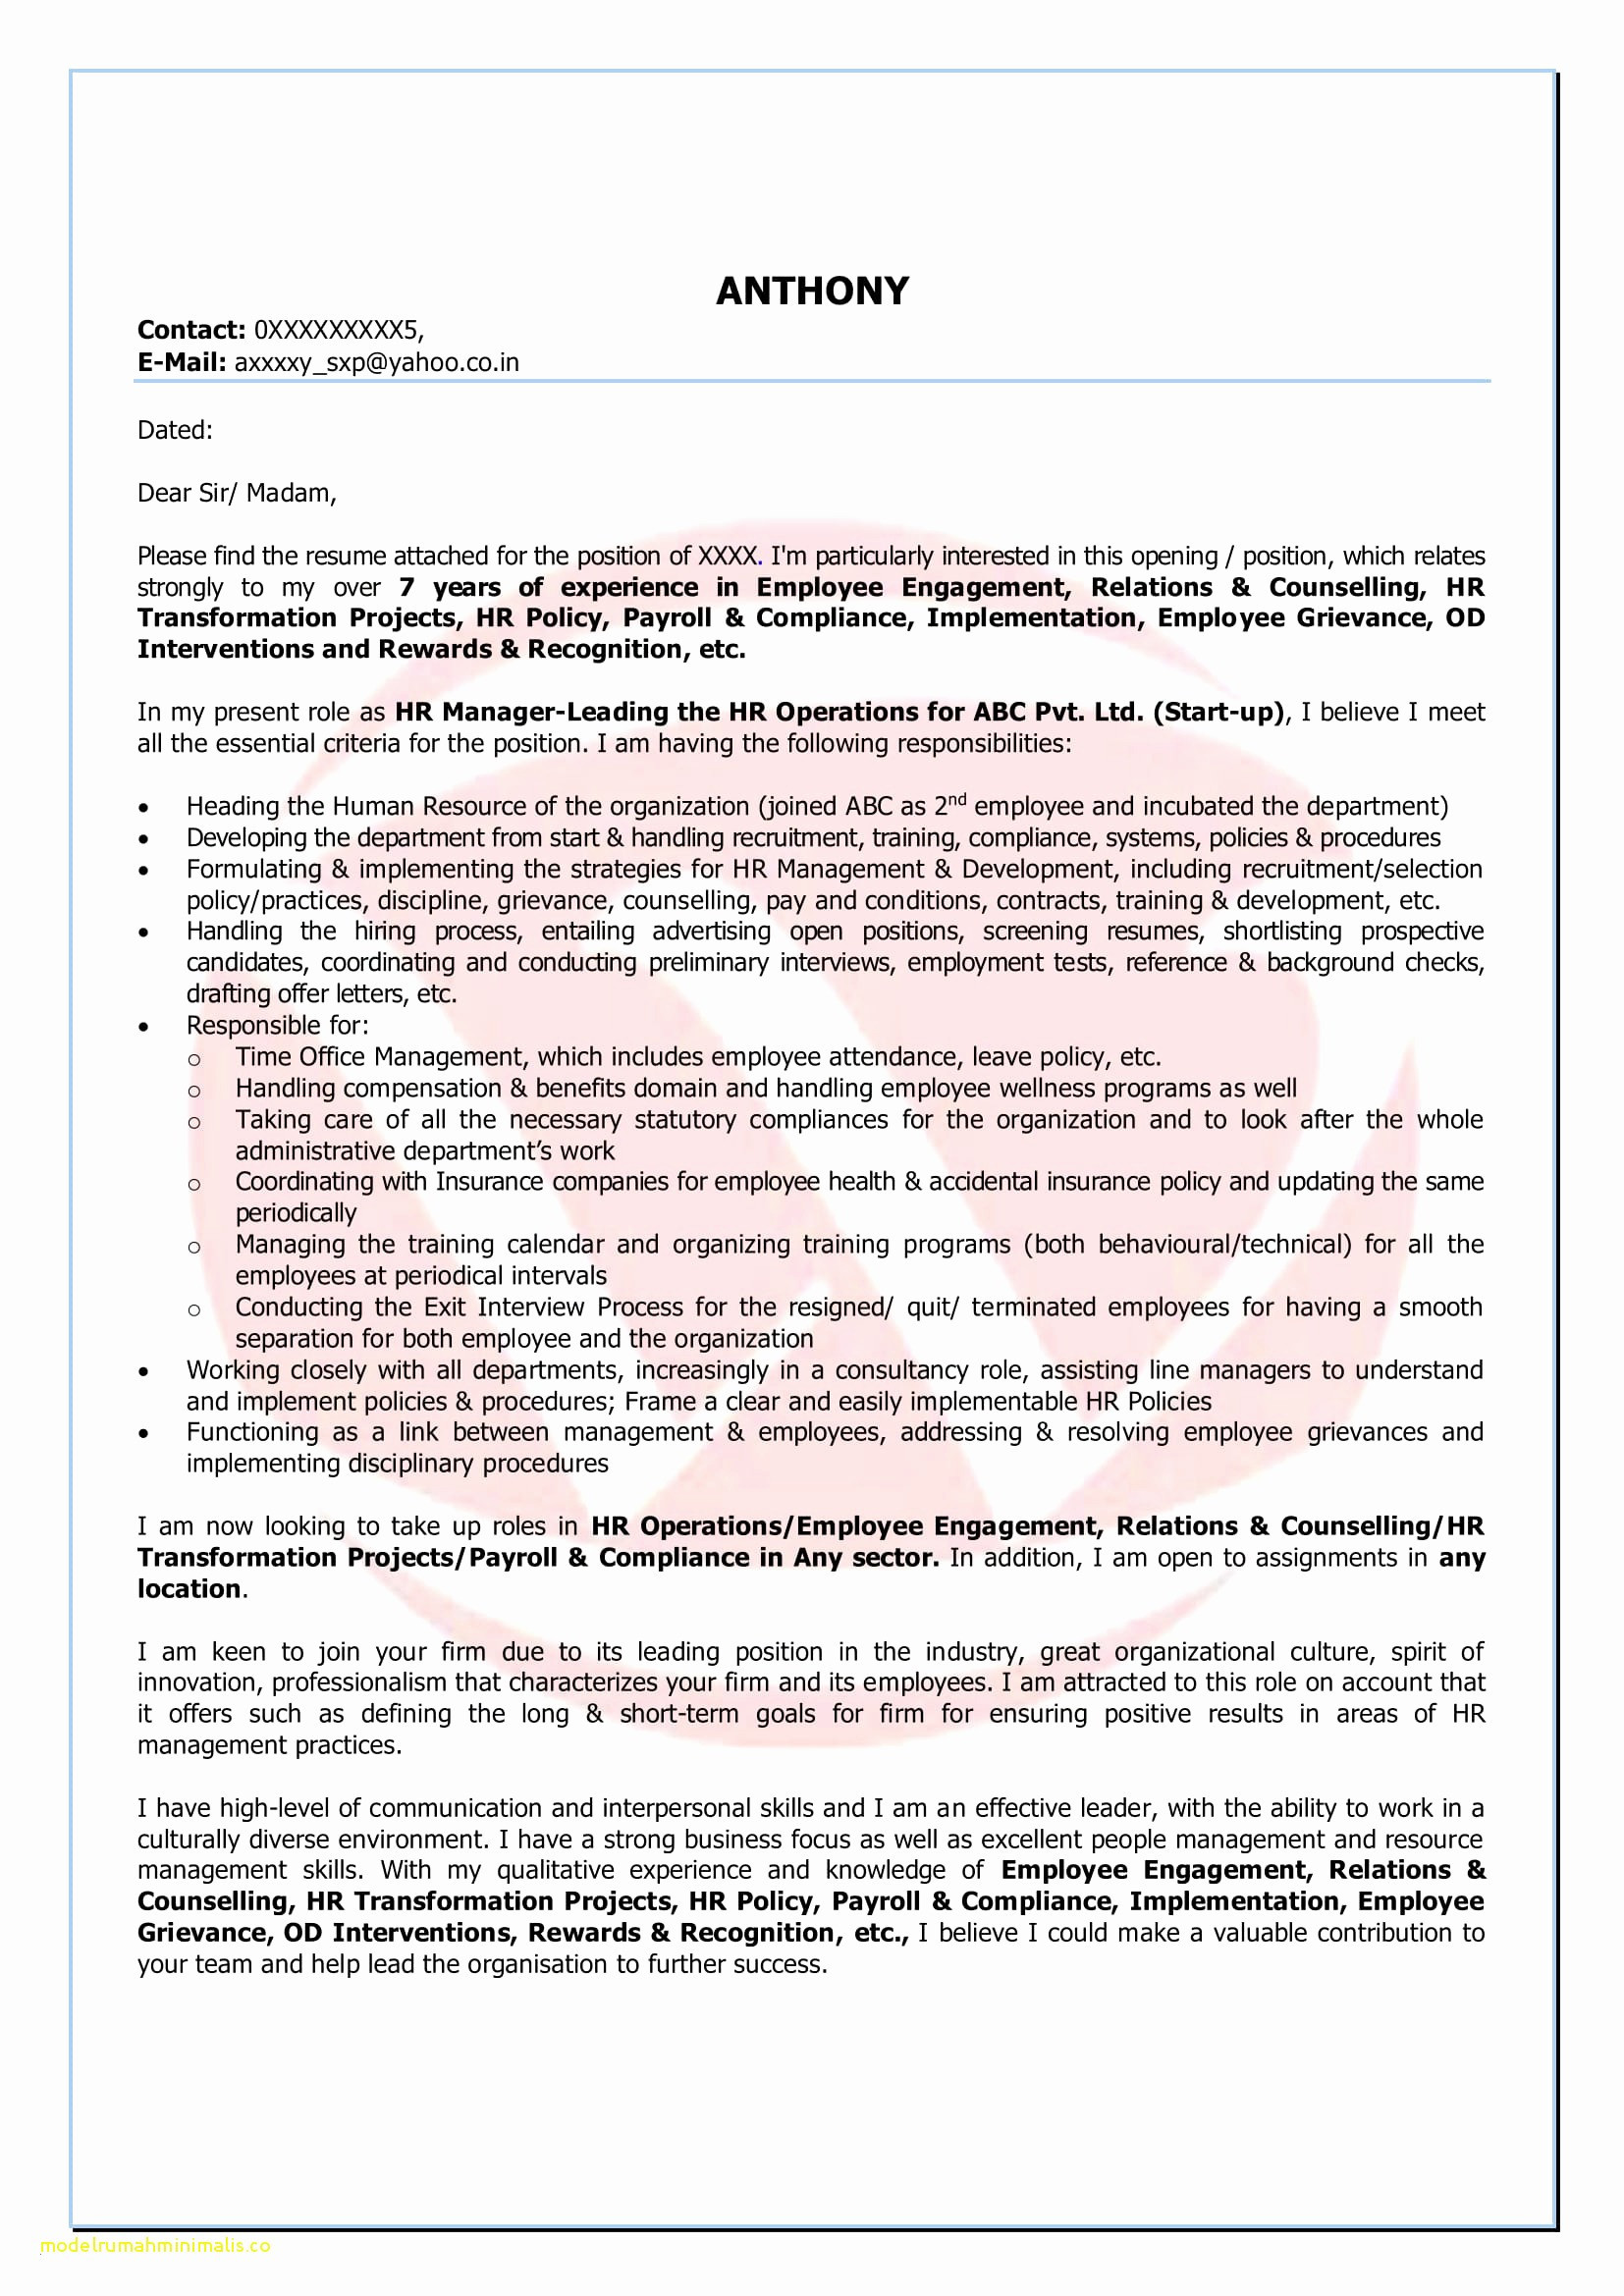 014 Biology Research Paper Example Luxury Ra Cover Letter Design Printable Sample Of Beautiful Ideas Marine Topic Full